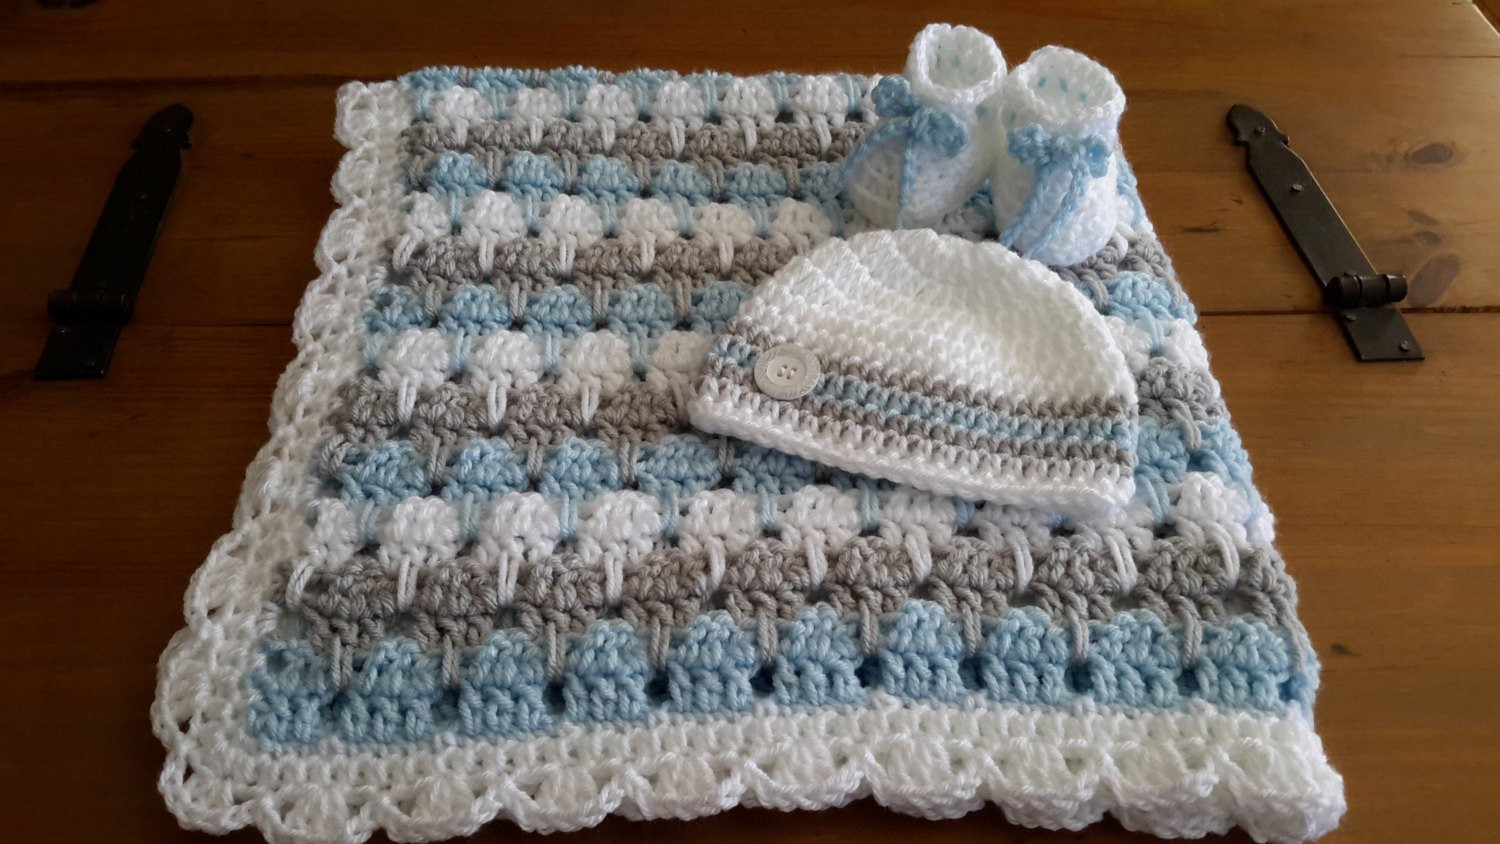 Baby Boy Crochet Blanket Patterns Lovely Baby Boy Blanket Crochet Stripe Crochet Blanket Afghan Of Baby Boy Crochet Blanket Patterns Best Of 10 Beautiful Baby Blanket Free Patterns